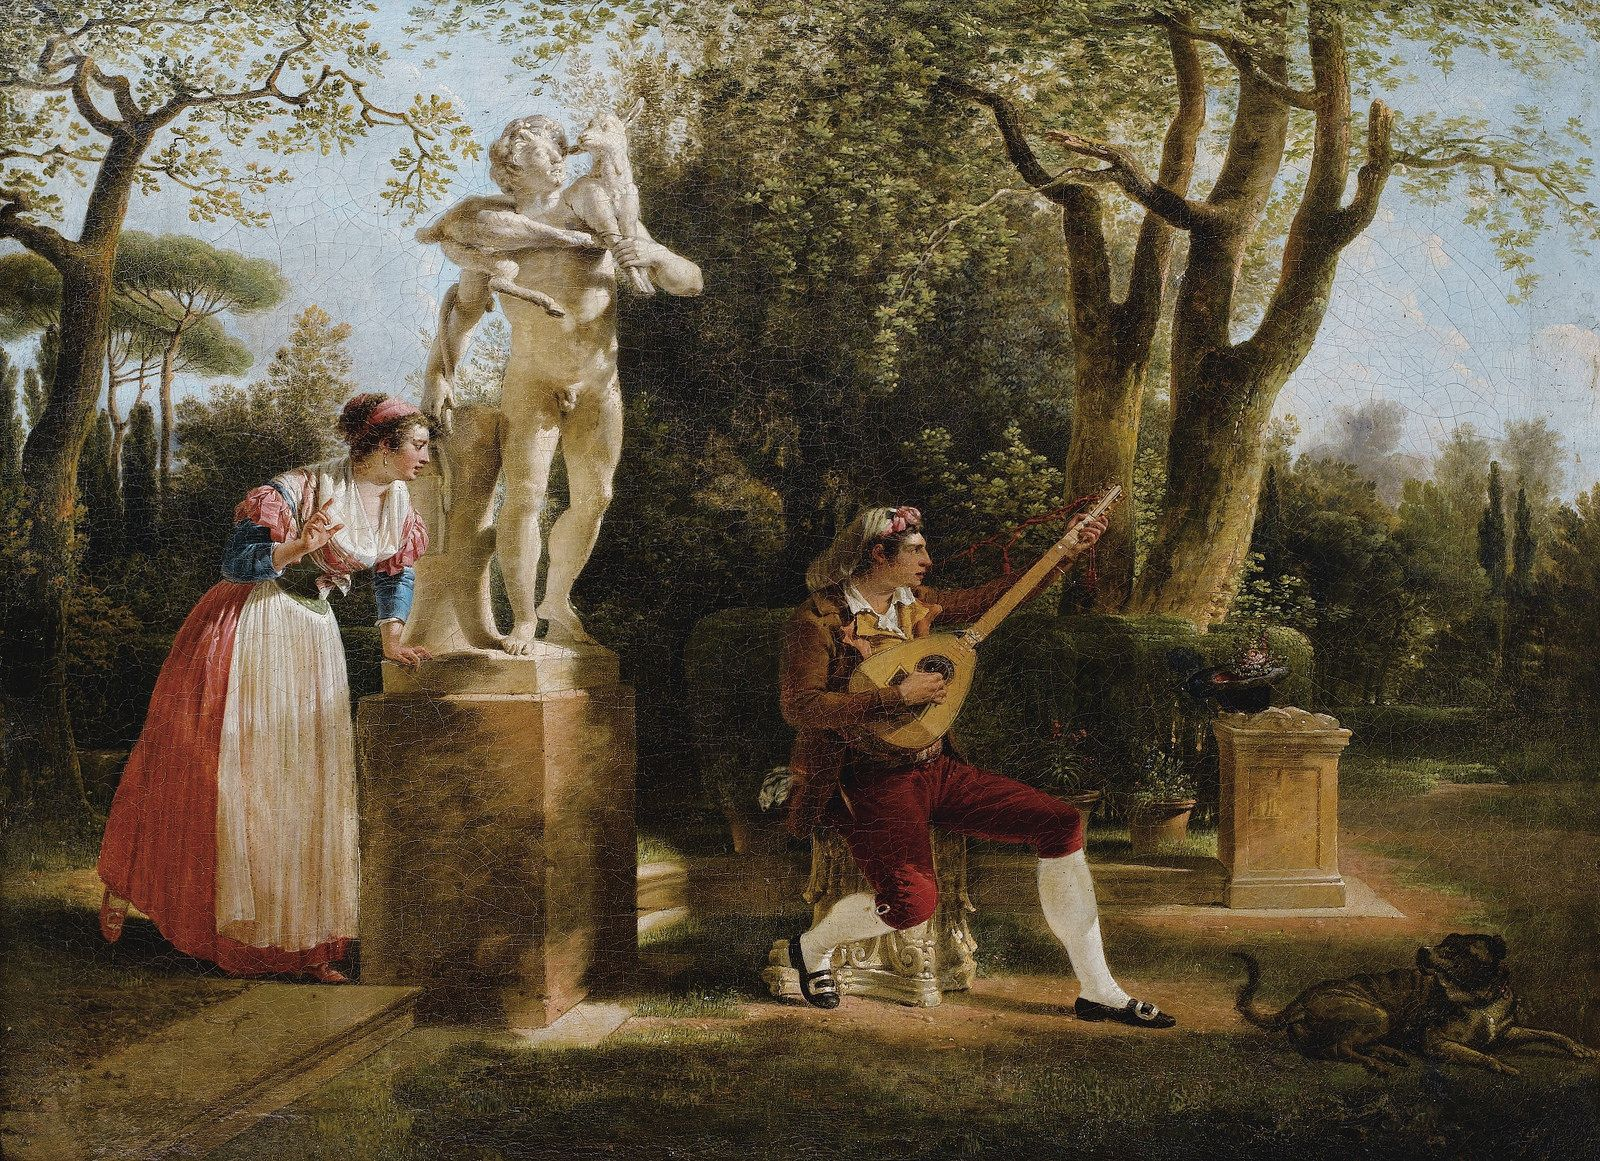 SABLET, JACQUES-HENRI - ELEGANTE LISTENING TO A GUITAR PLAYER IN A PARK IN ROM. 1791